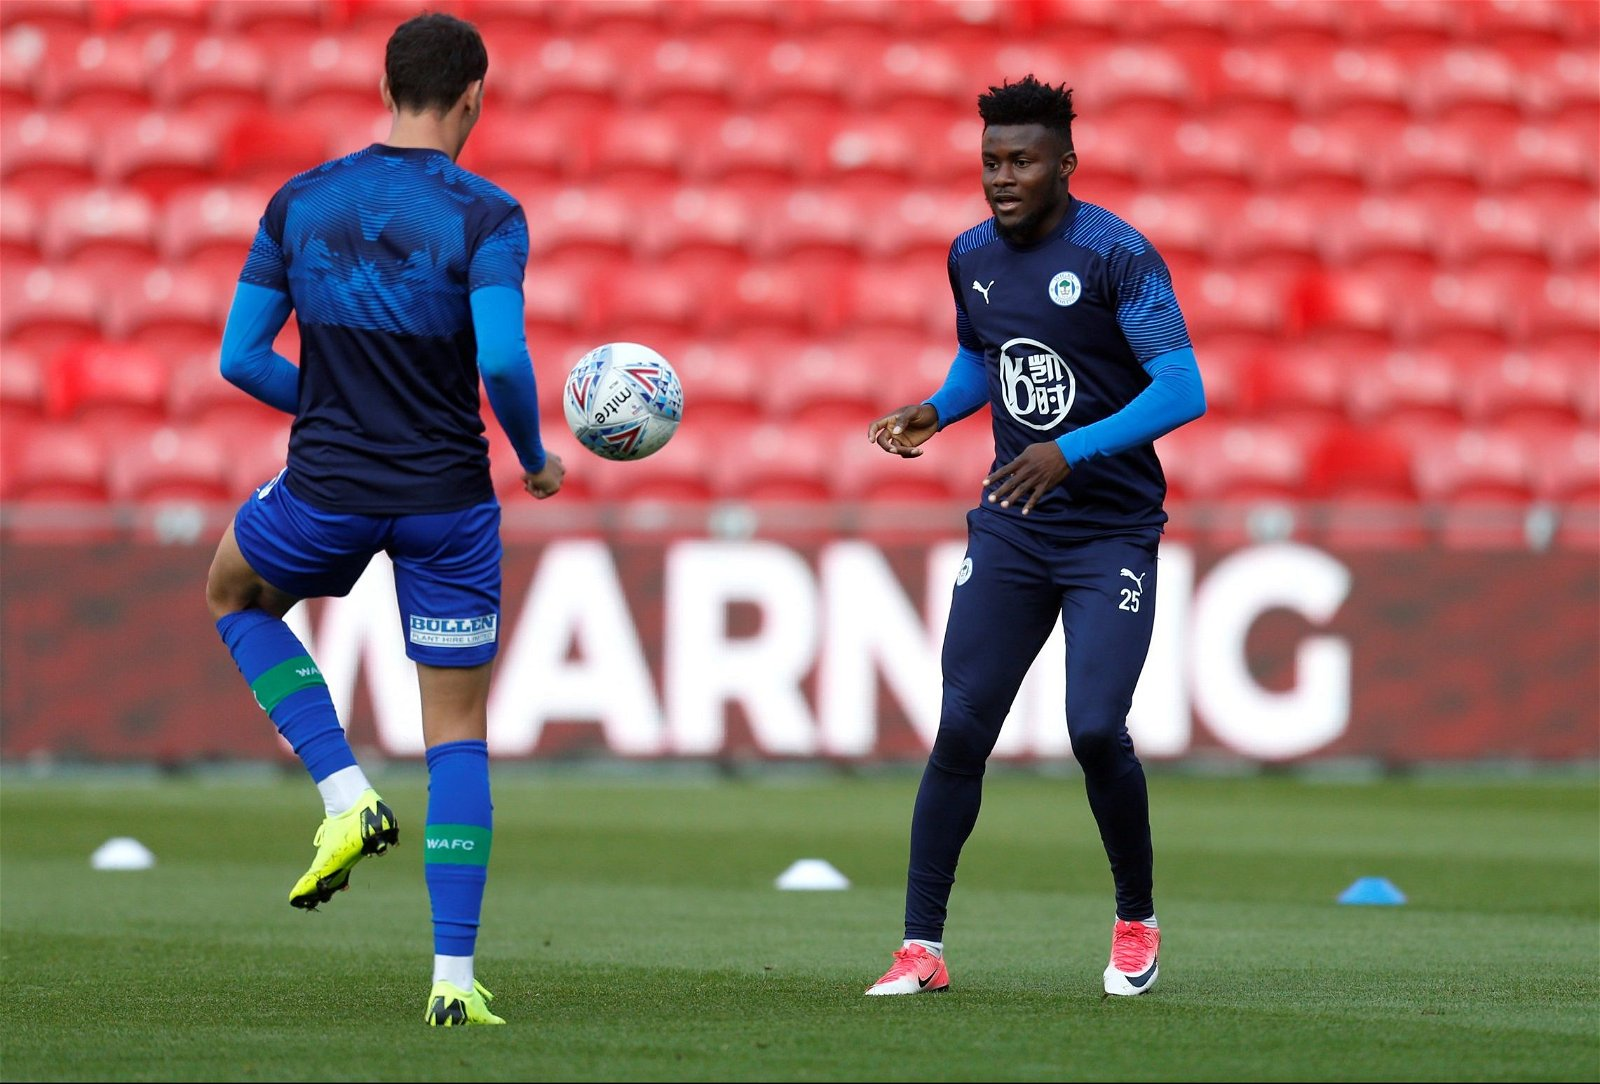 """wolves striker bright enobakhare on loan to wigan e1603900856490 - Wolves dodged one huge bullet with """"unbelievable"""" flop who Nuno once lauded """"special"""" - opinion"""